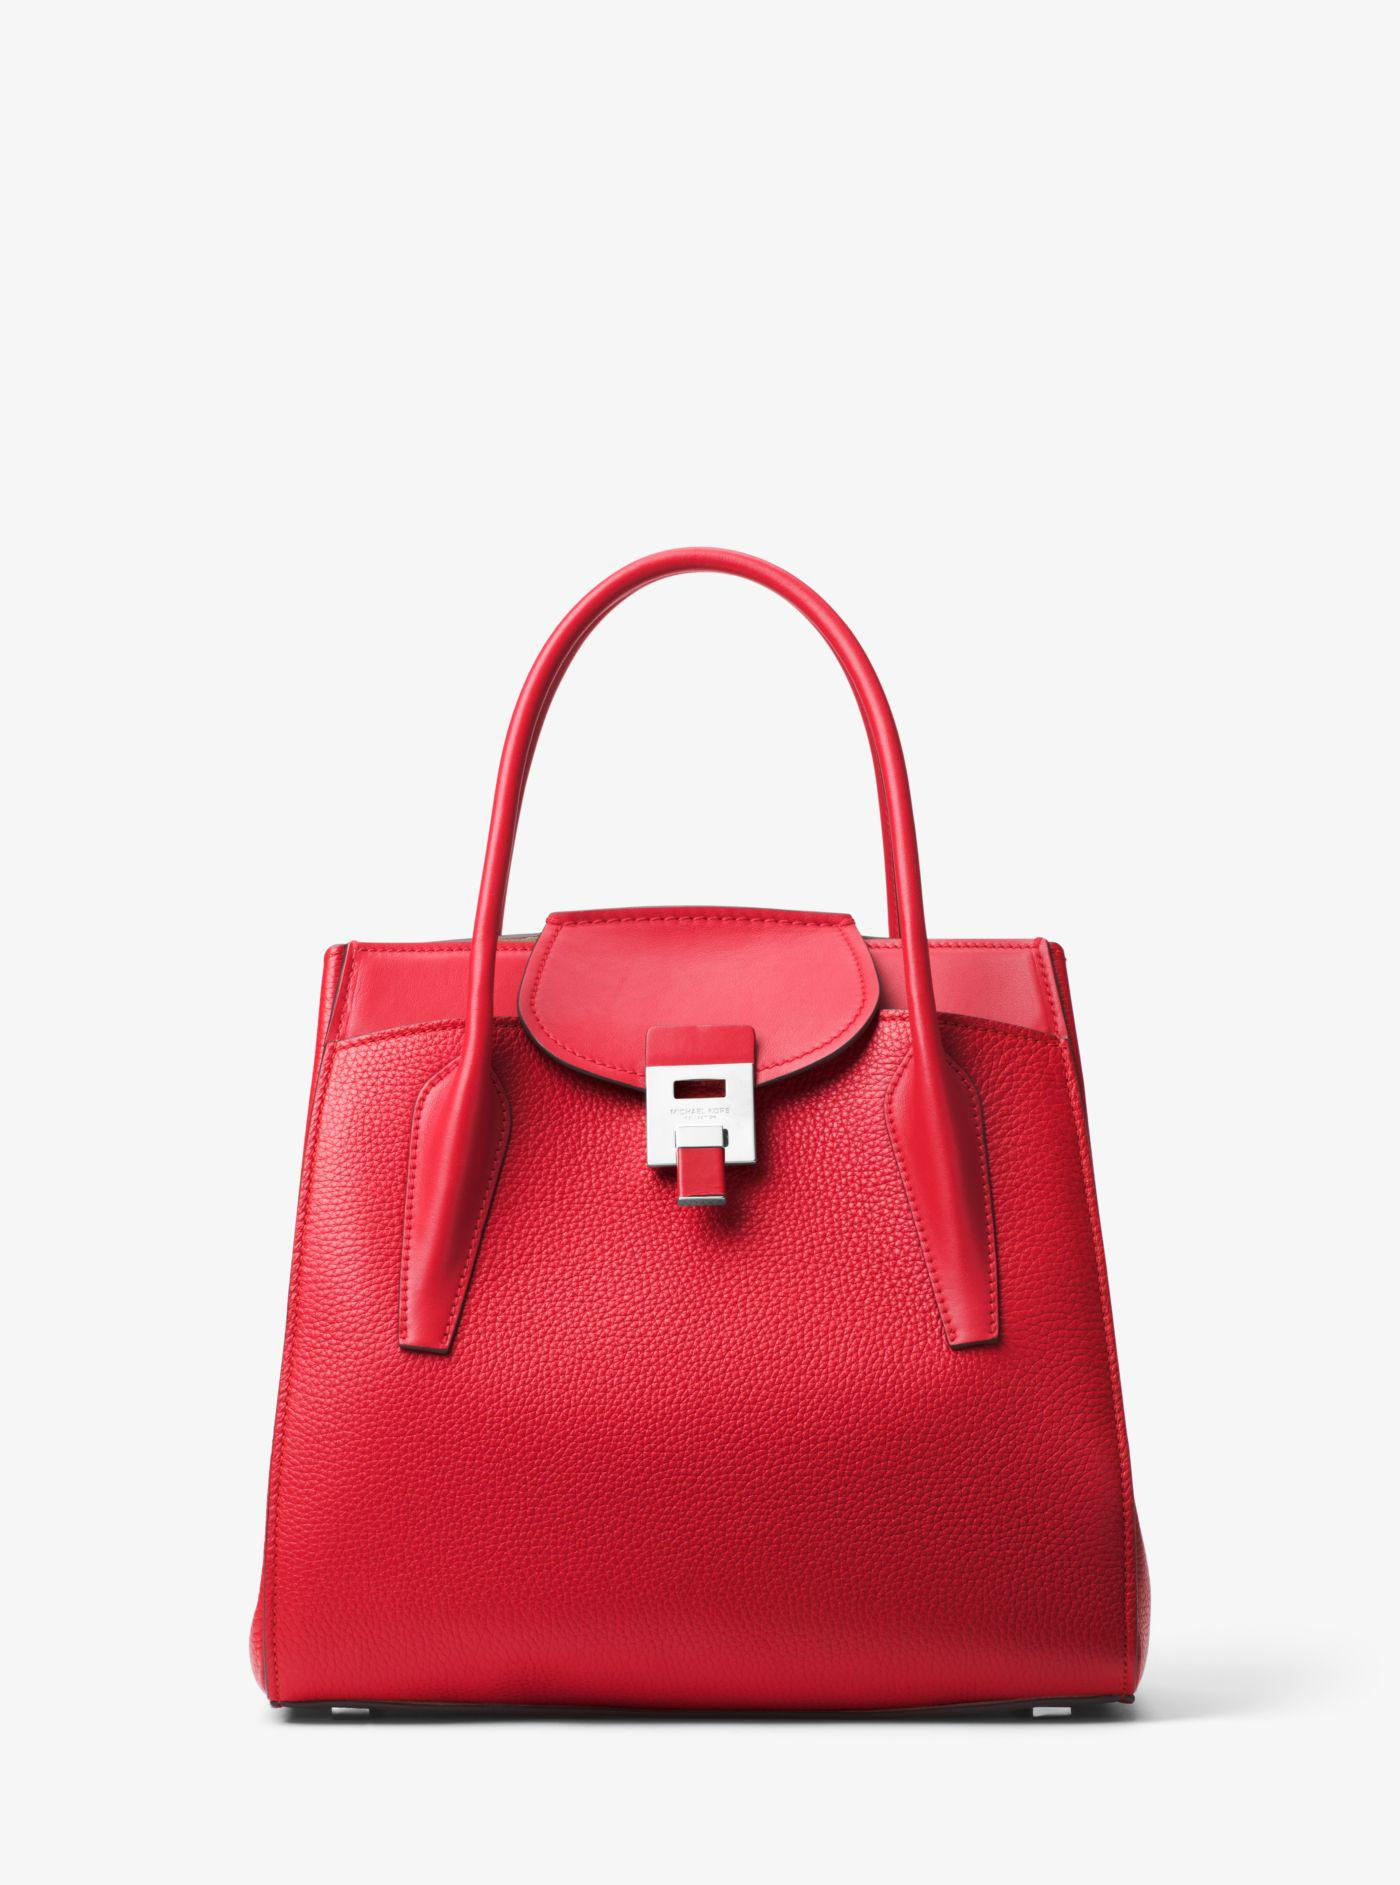 4e8c7a3bfb1d Lyst - Michael Kors Bancroft Large Pebbled Calf Leather Satchel in Red